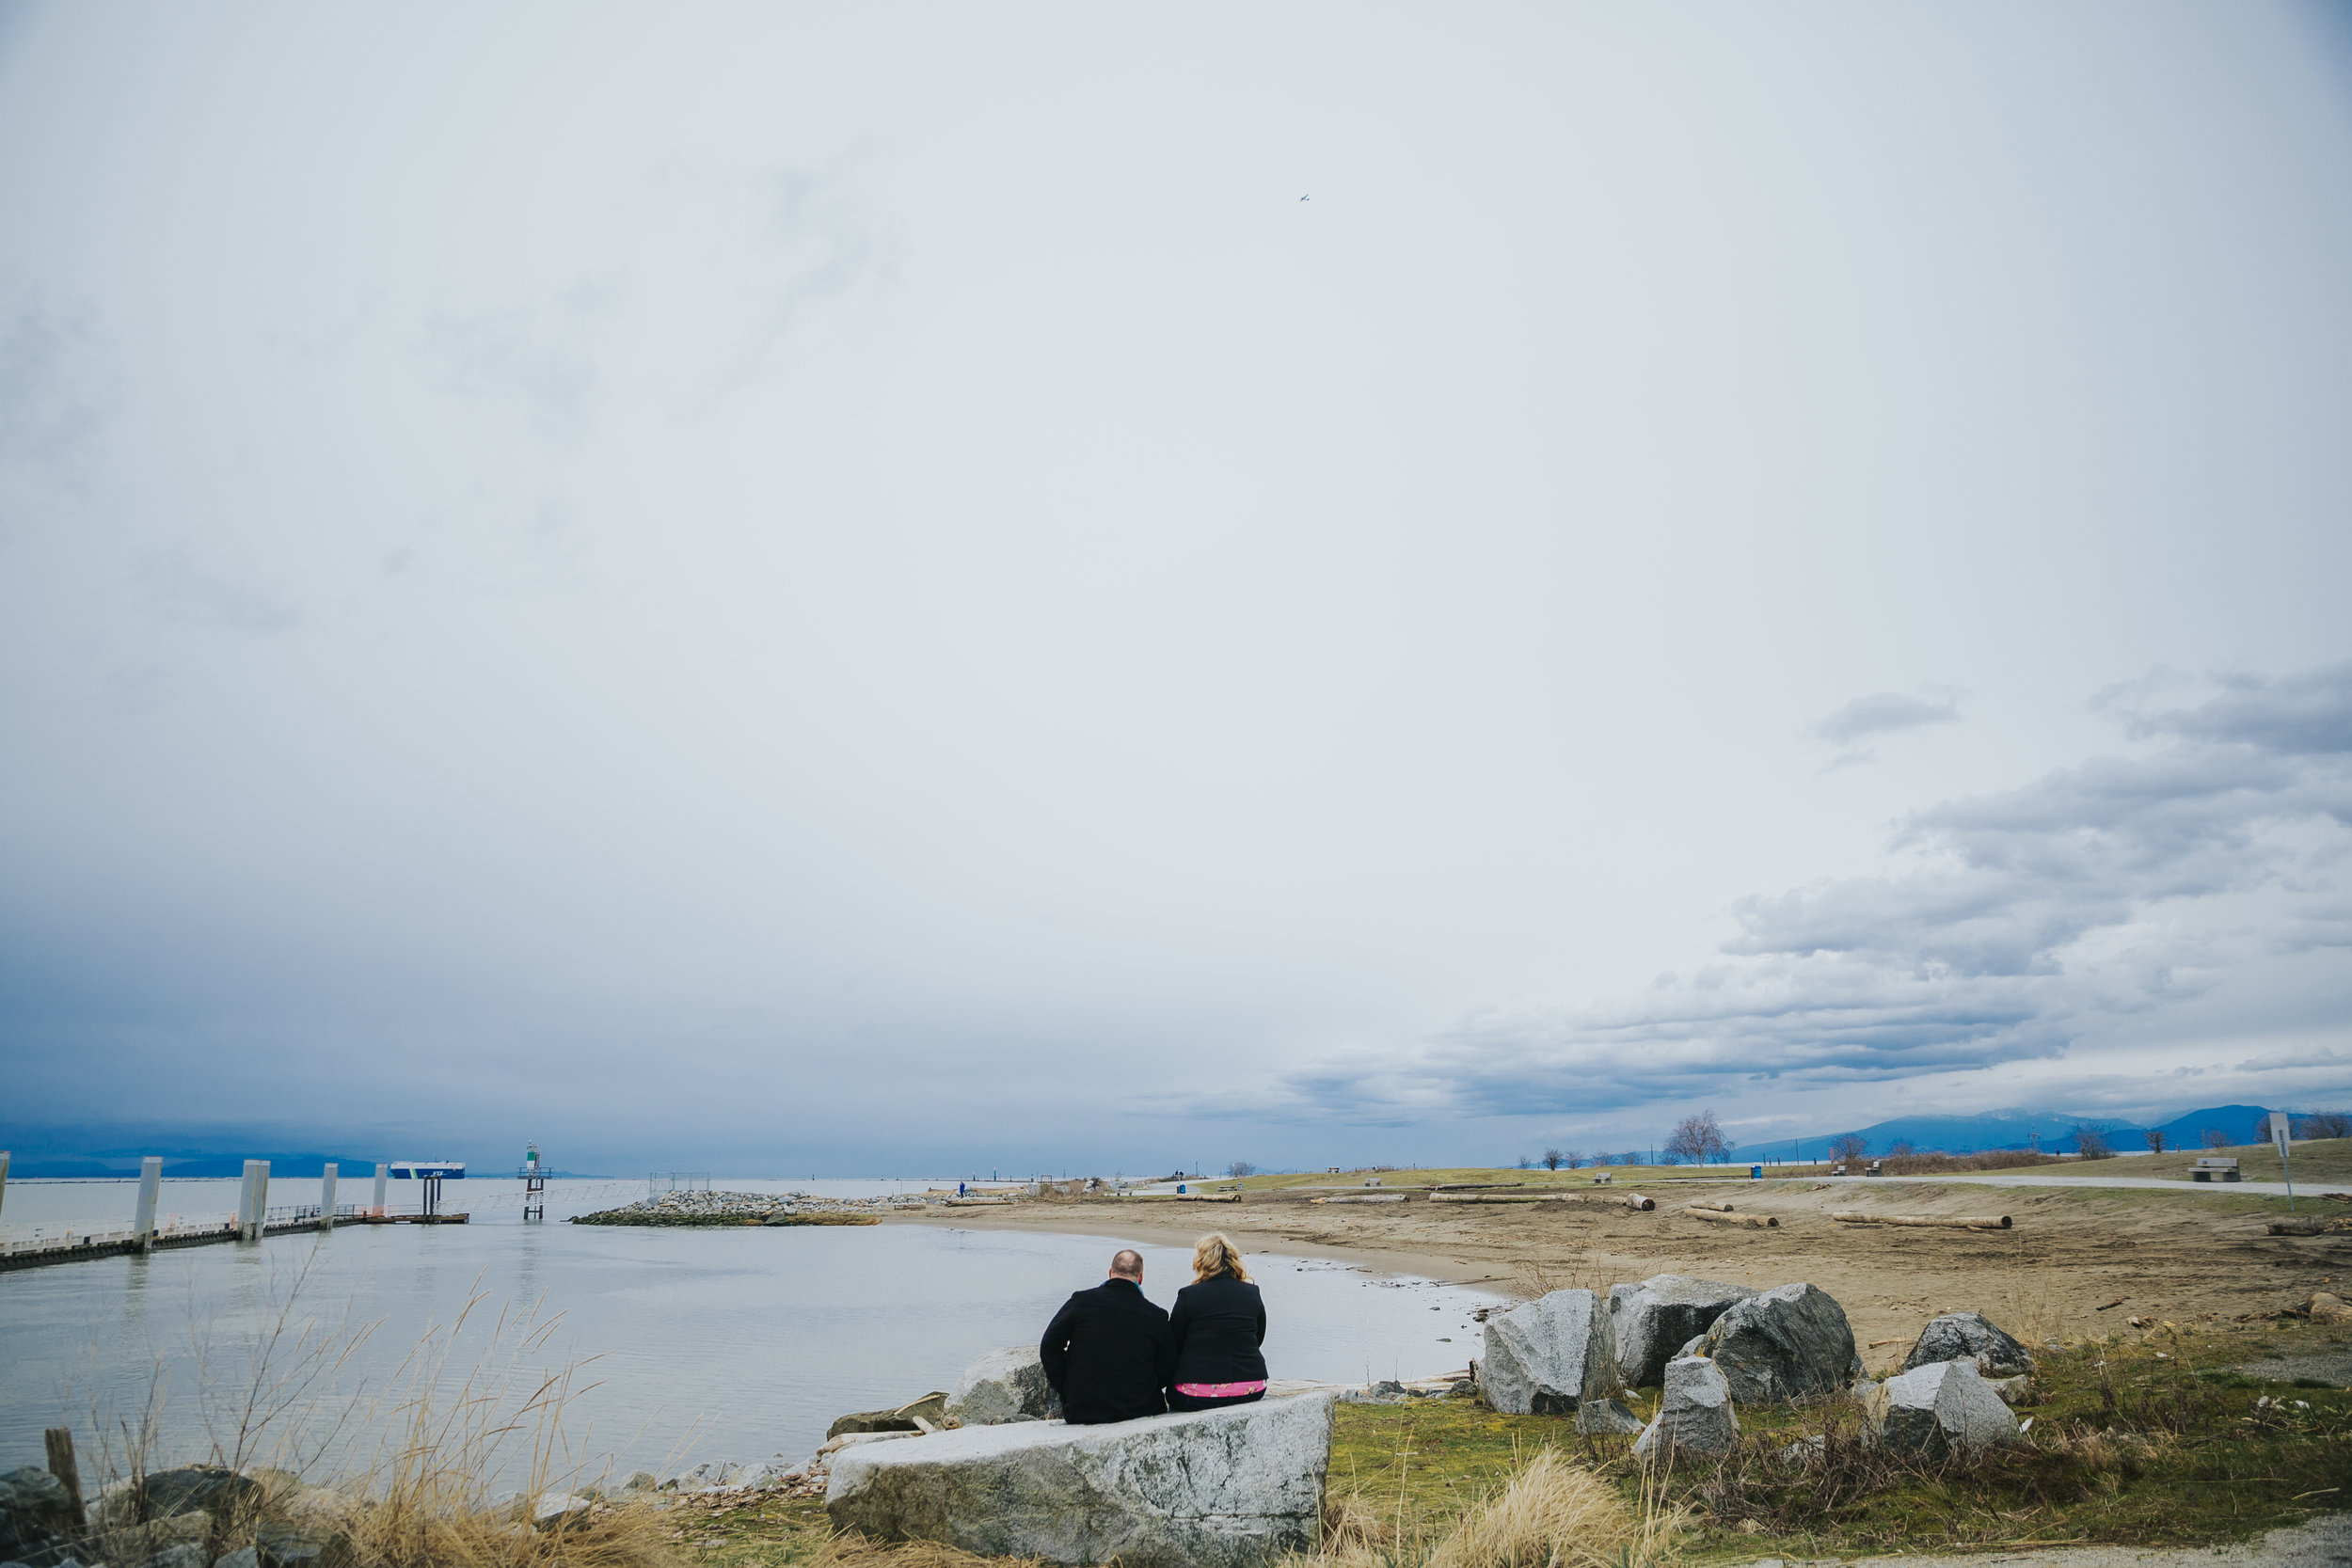 Cloudy engagement session at Garry Point Park in Richmond, BC. Couple sitting on rock  Photography by Christina Voorhorst of Mimsical Photography  #westcoastphotographer #engagement #ring #couple #ocean #cloud #overcast #romantic #poses